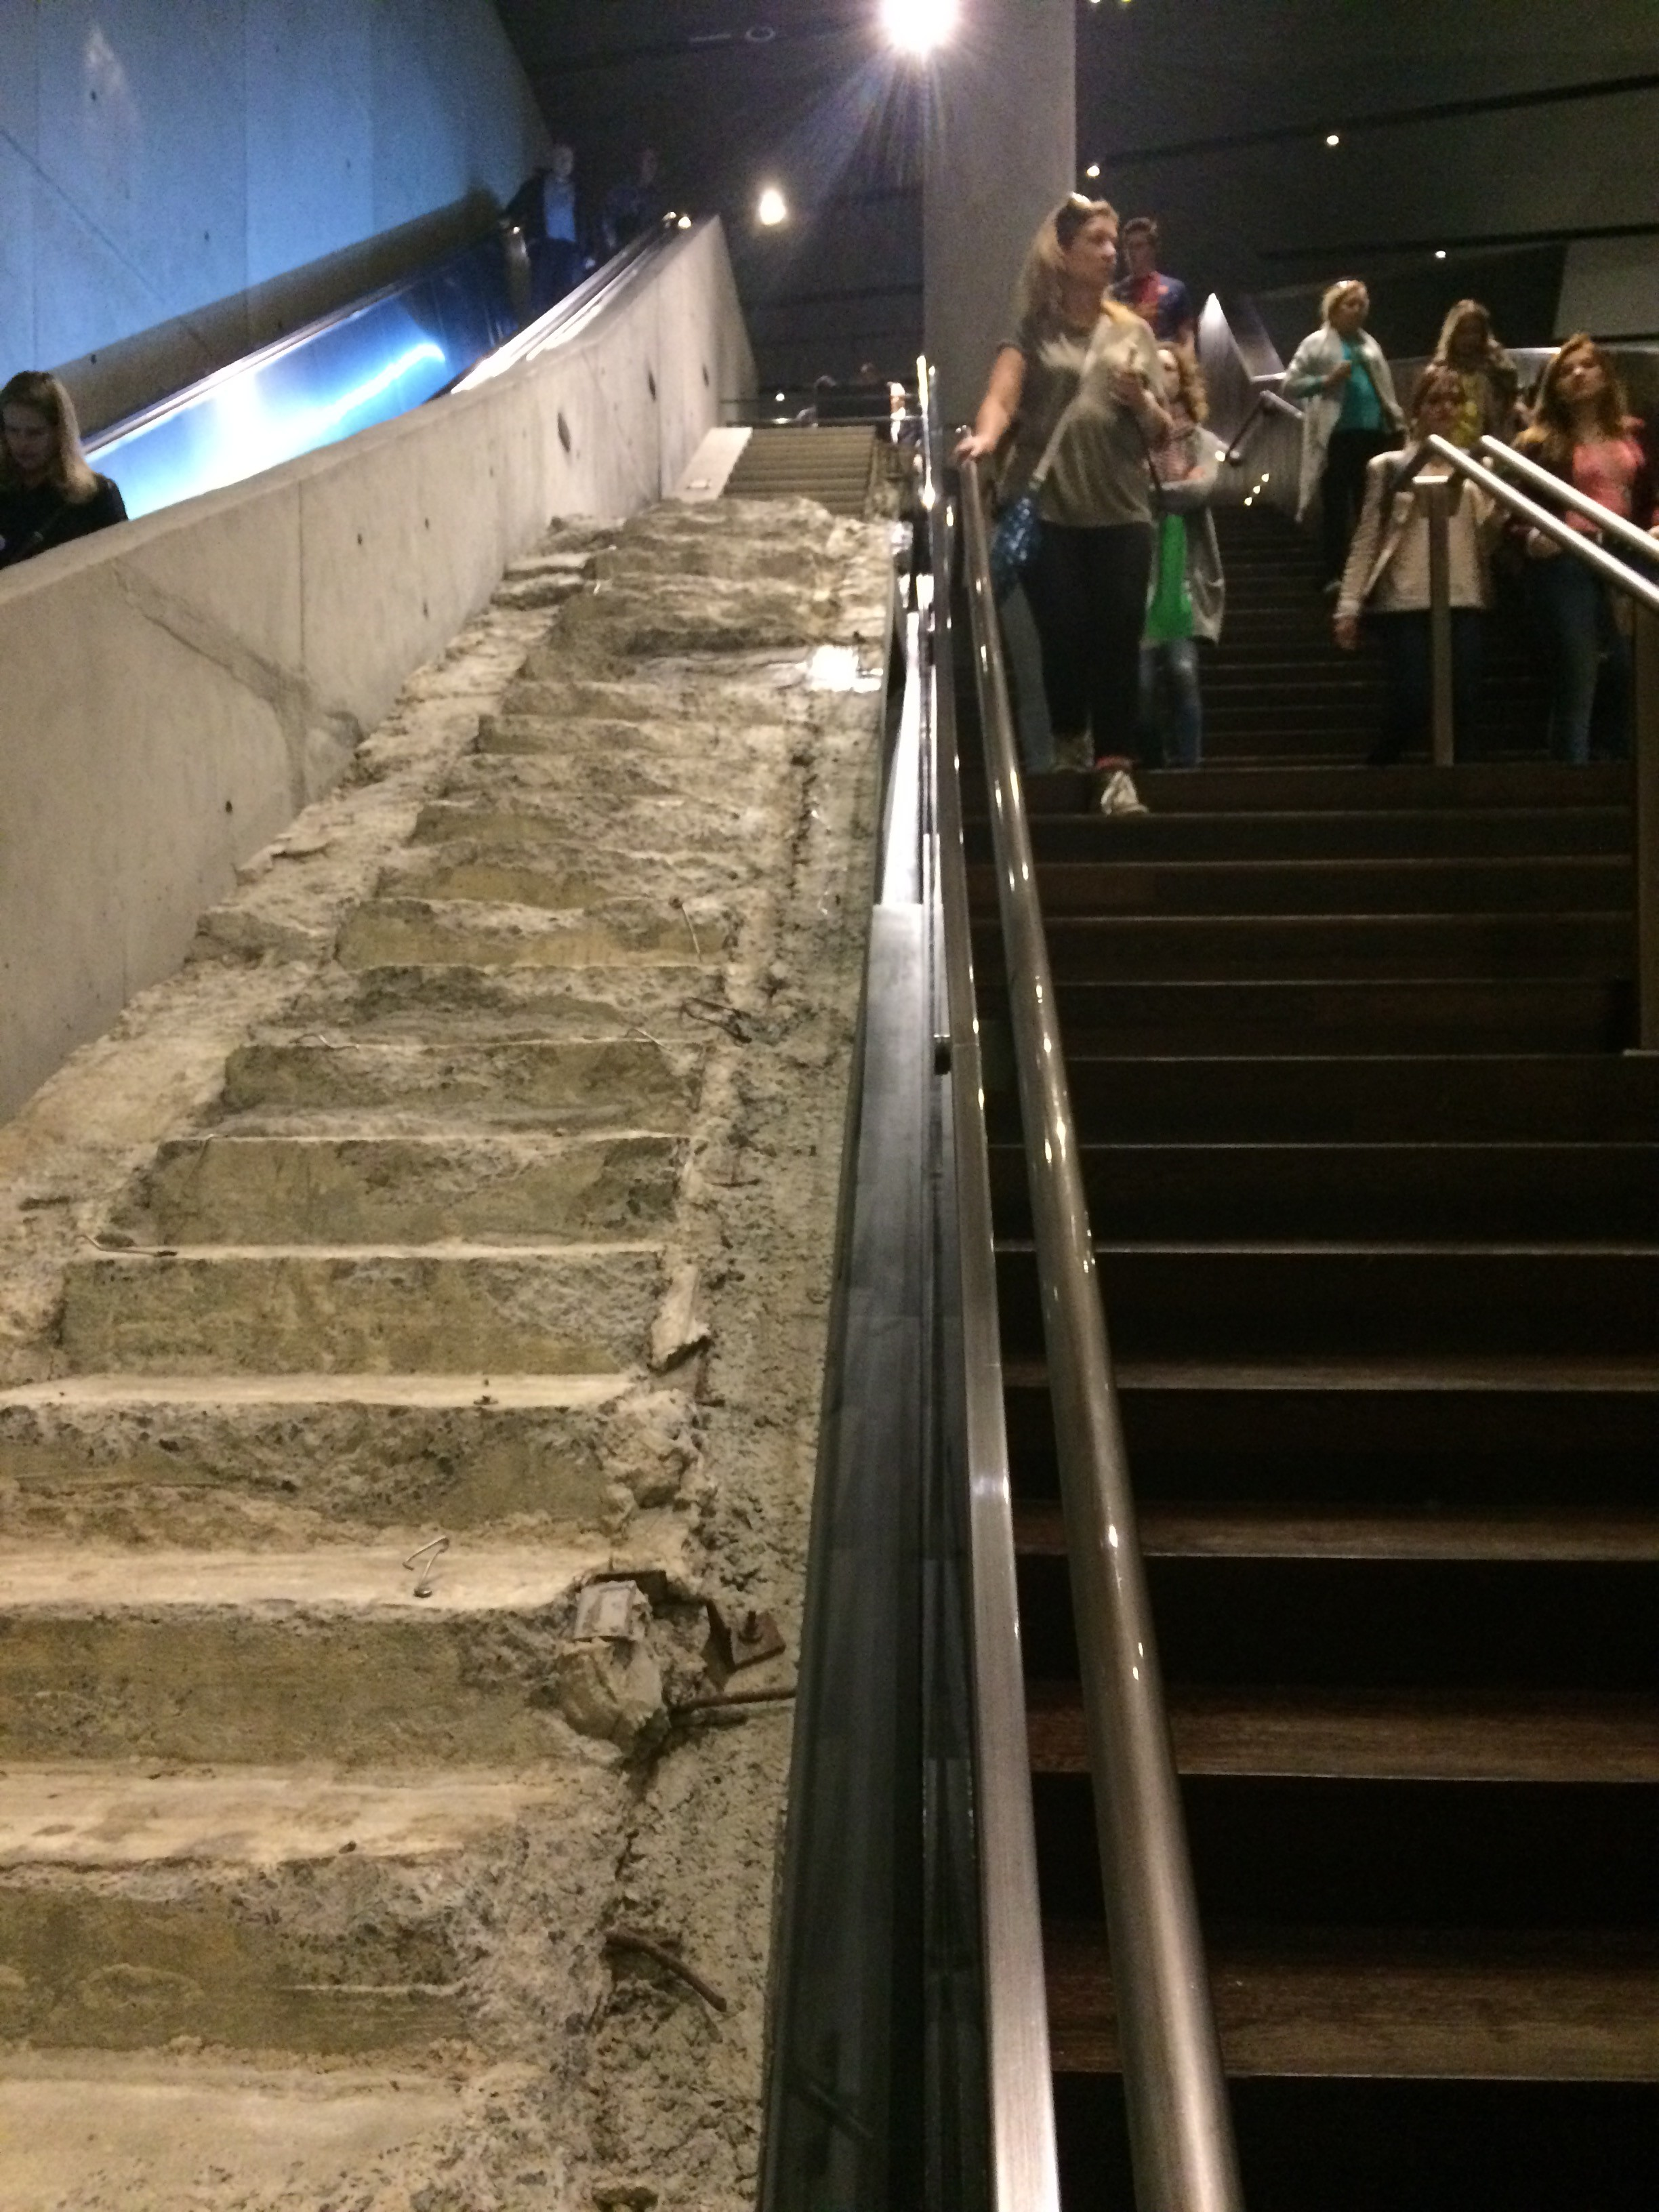 This outside stairway, which went from the World Trade Center Plaza to Vesey Street, provided a vital escape route for many who were working in the towers on Sept. 11, 2001. According to the museum guide, the stairs were in better shape immediately after the terror attacks, but suffered damage during the recovery period.